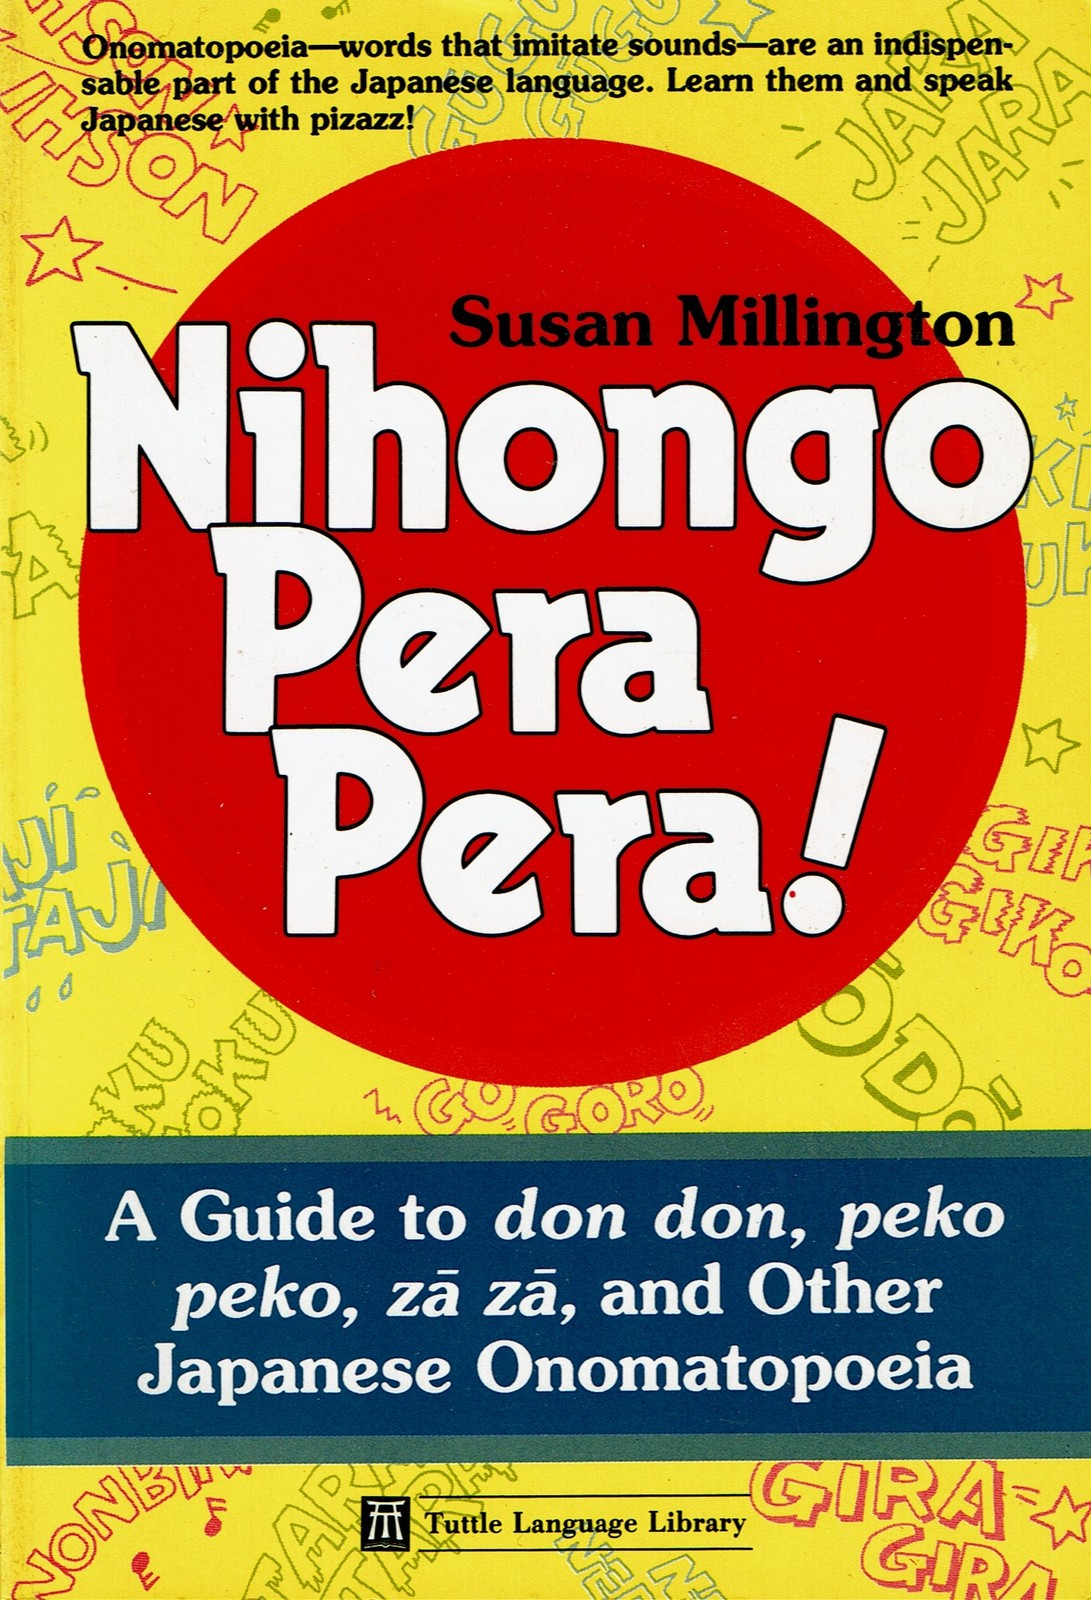 Nihongo Pera Pera!, A User's Guide to Japanese Onomatopoeia (Tuttle Language Lib